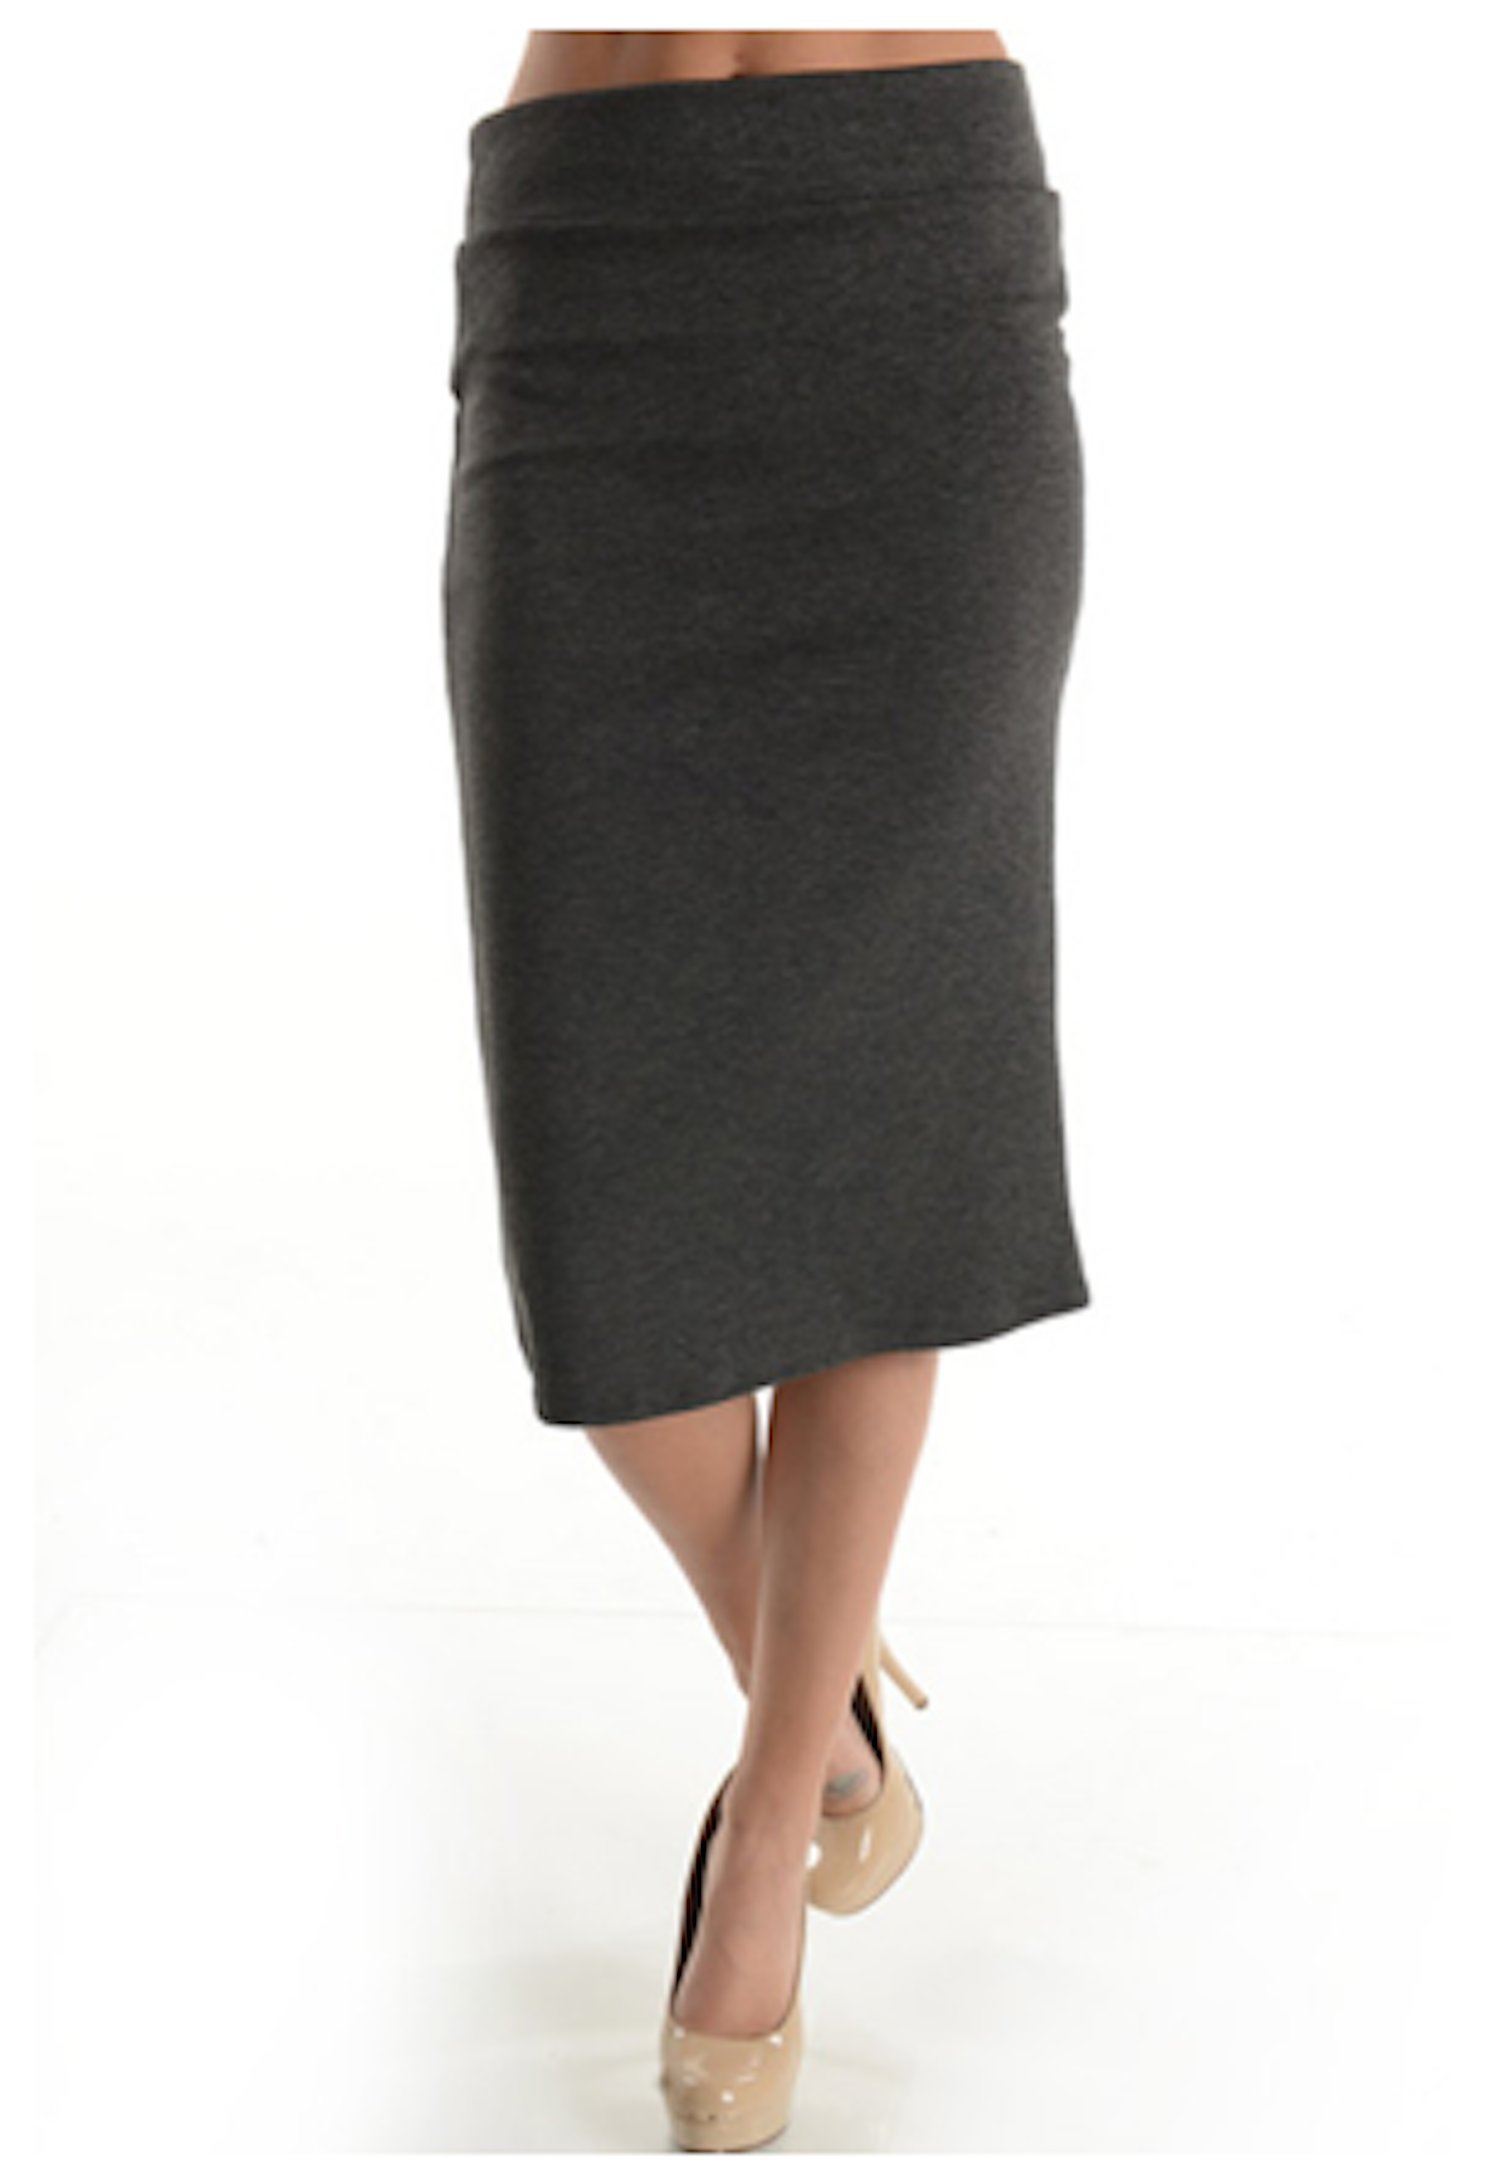 Azules Women's below the Knee Pencil Skirt - Made in USA (M, Charcoal)